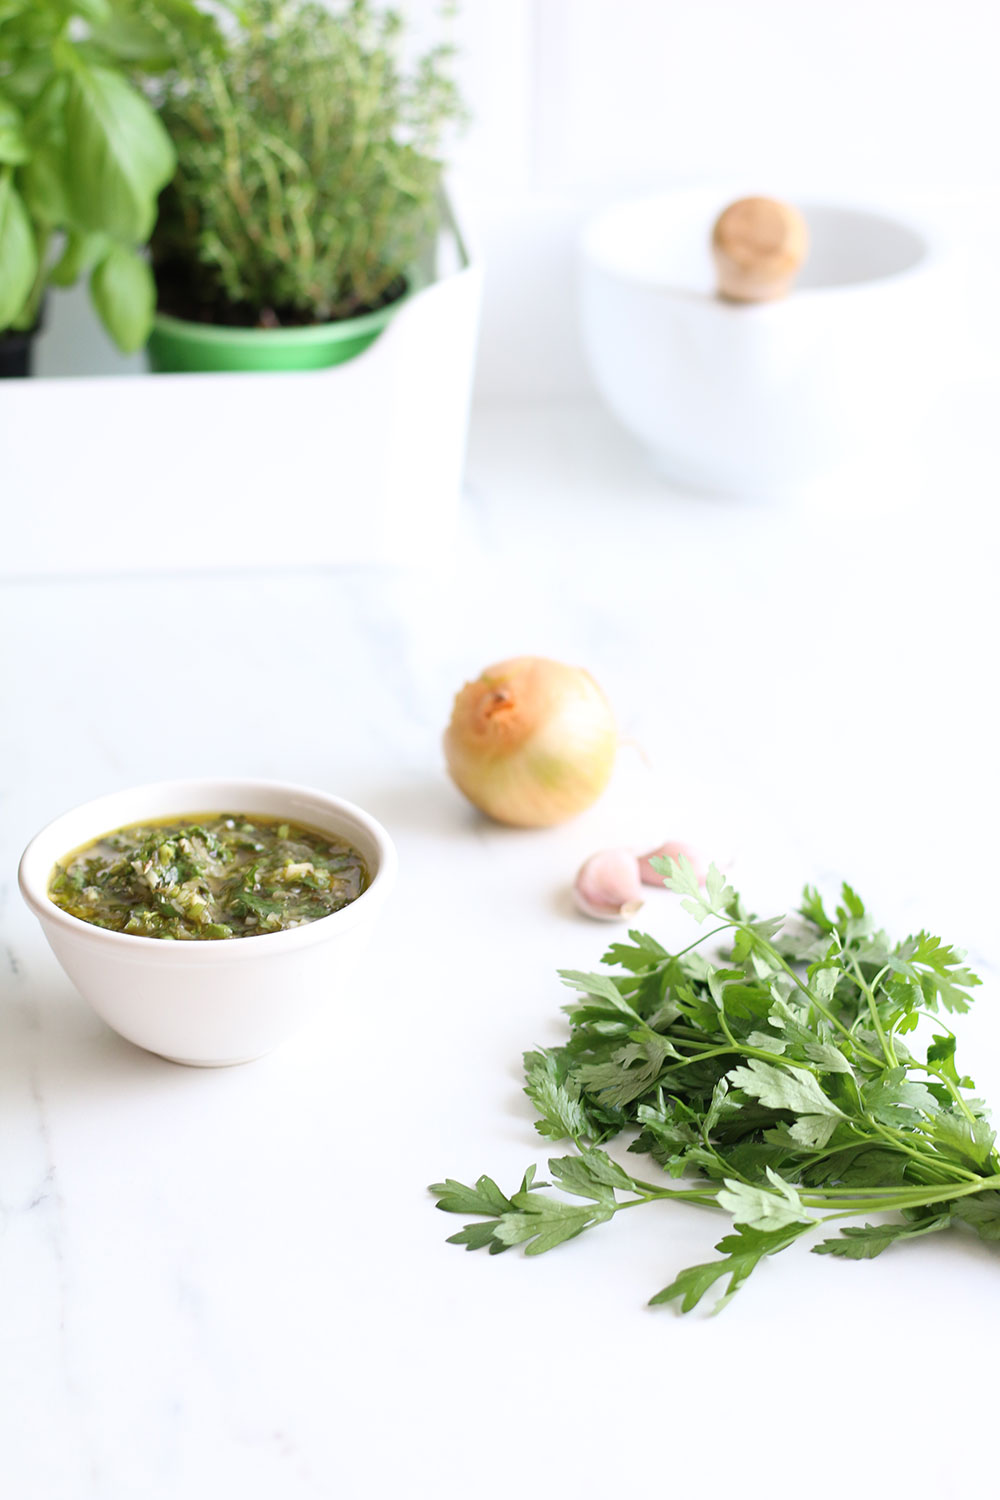 Healthy Chimichurri Sauce Recipe: Perfect for grilled meat, fish and veggies and to marinate meat! https://www.spotebi.com/recipes/chimichurri-sauce/